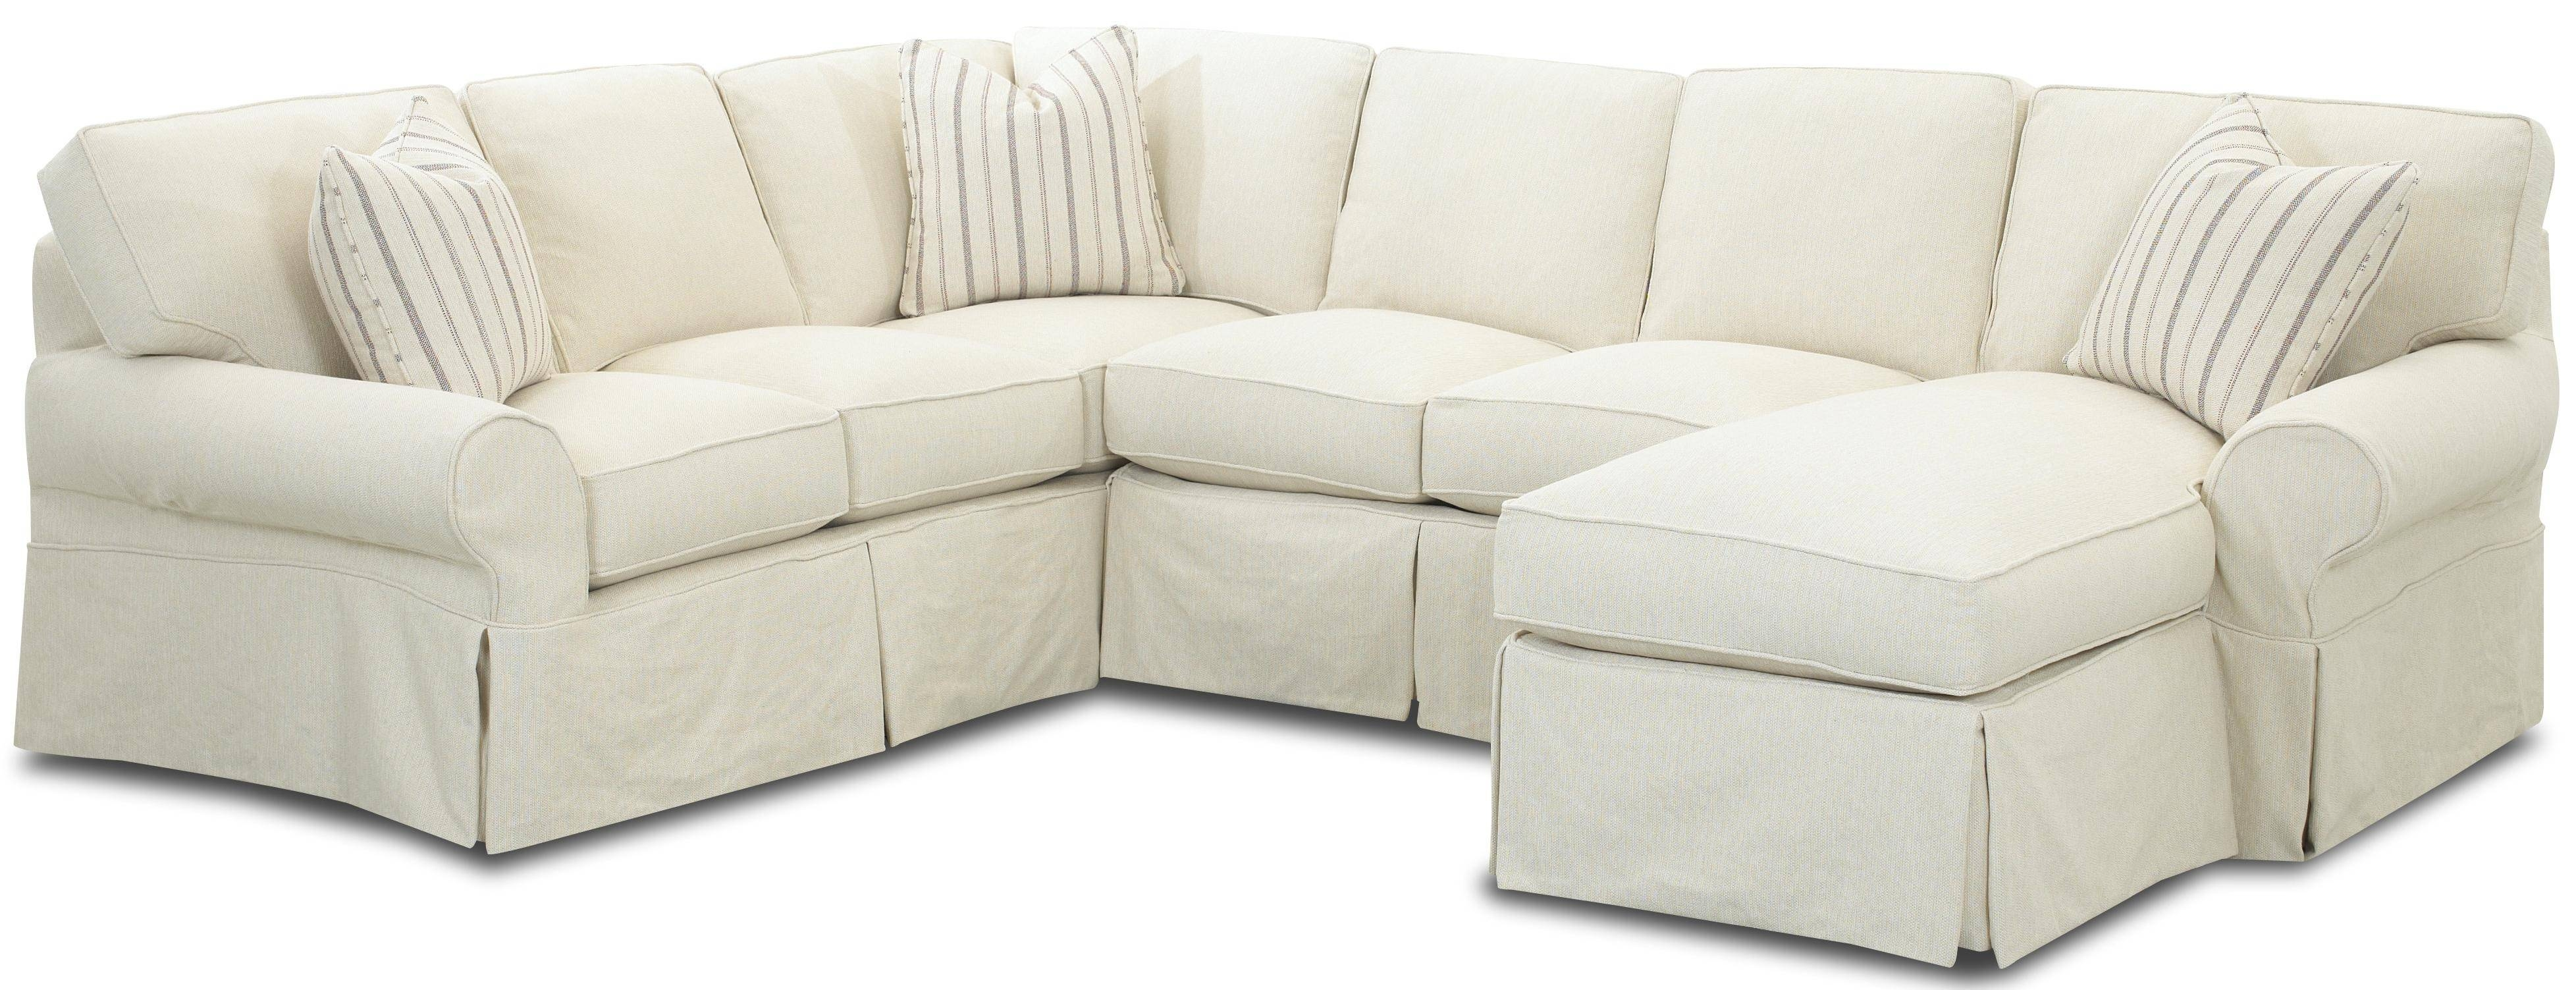 Inspirations: Interesting Furniture Sectional Sofa Slipcovers For Within Slipcovers Sofas (View 16 of 30)